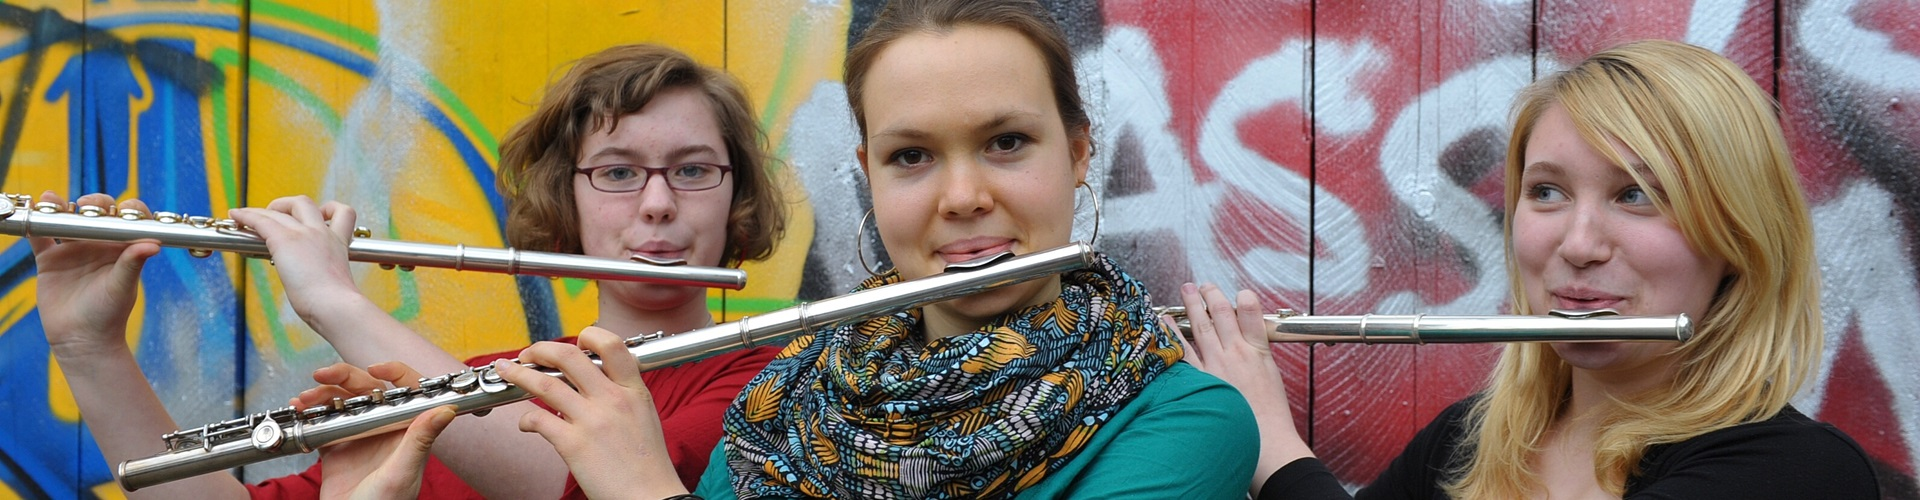 Learn Transverse flute, Transverse flute lessons